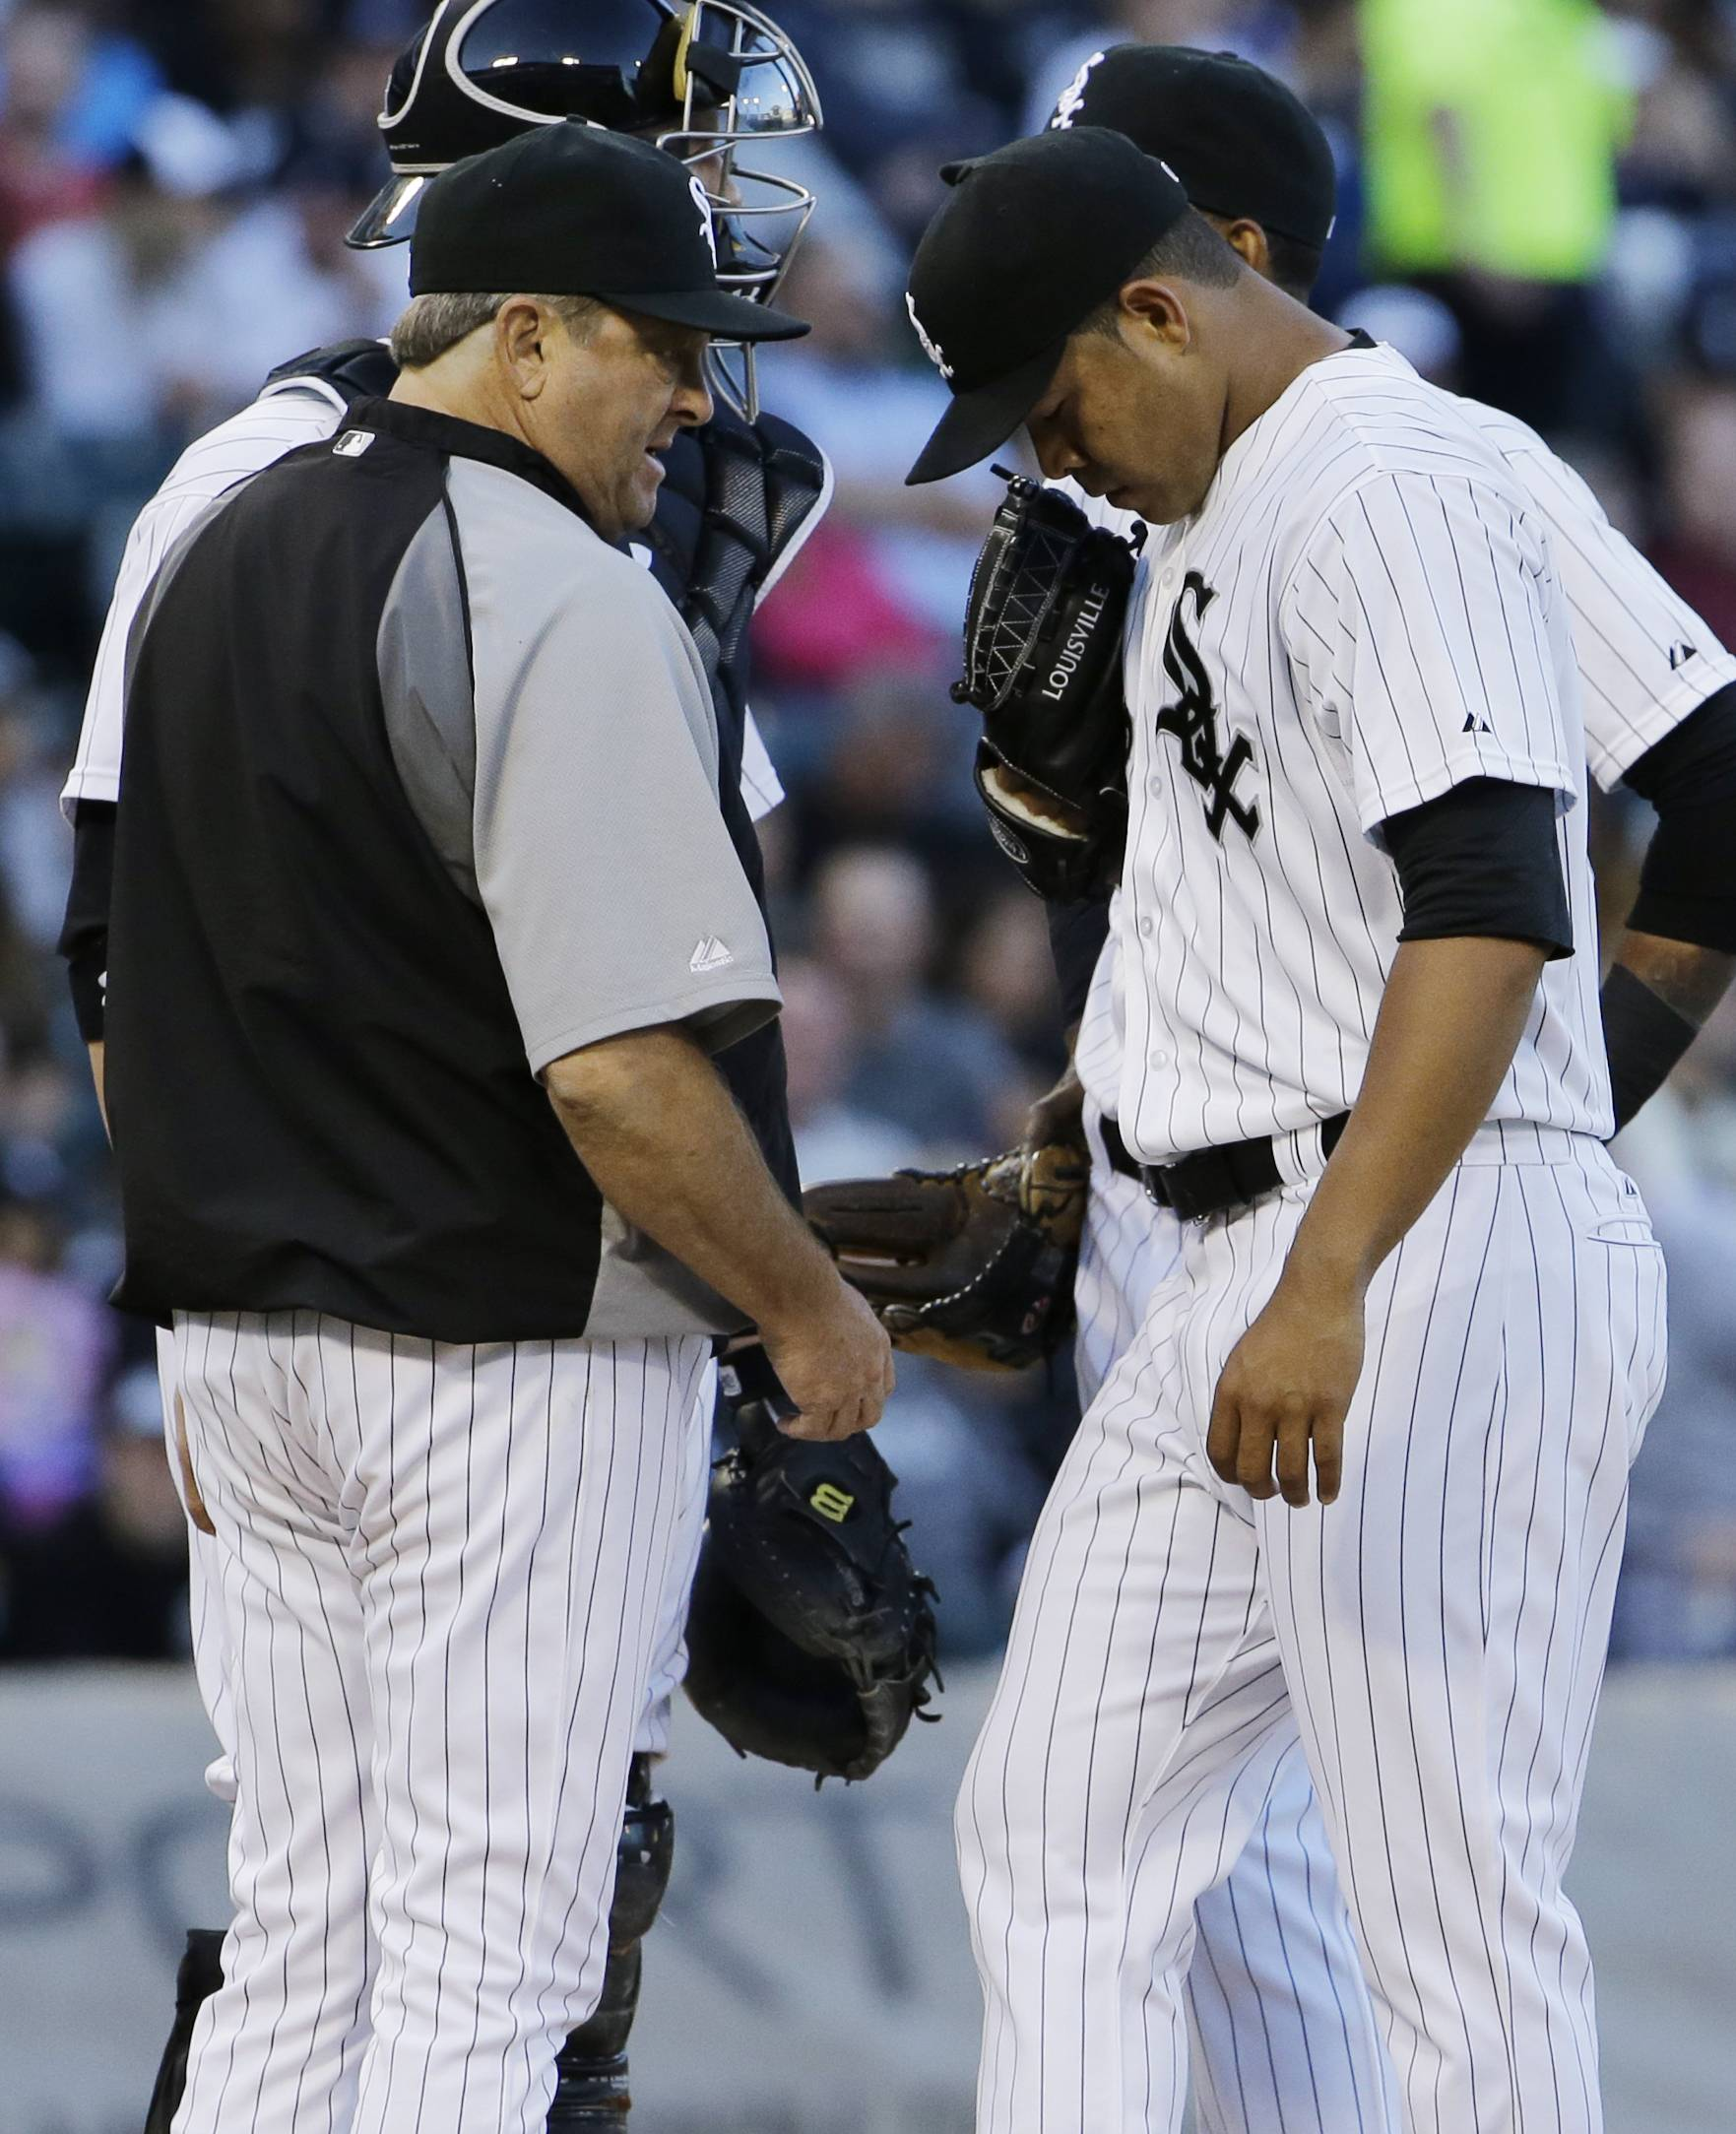 White Sox starter Jose Quintana, right, looks down as he listens to pitching coach Don Cooper during the first inning of a baseball game against the Kansas City Royals in Chicago on Friday, June 13, 2014.